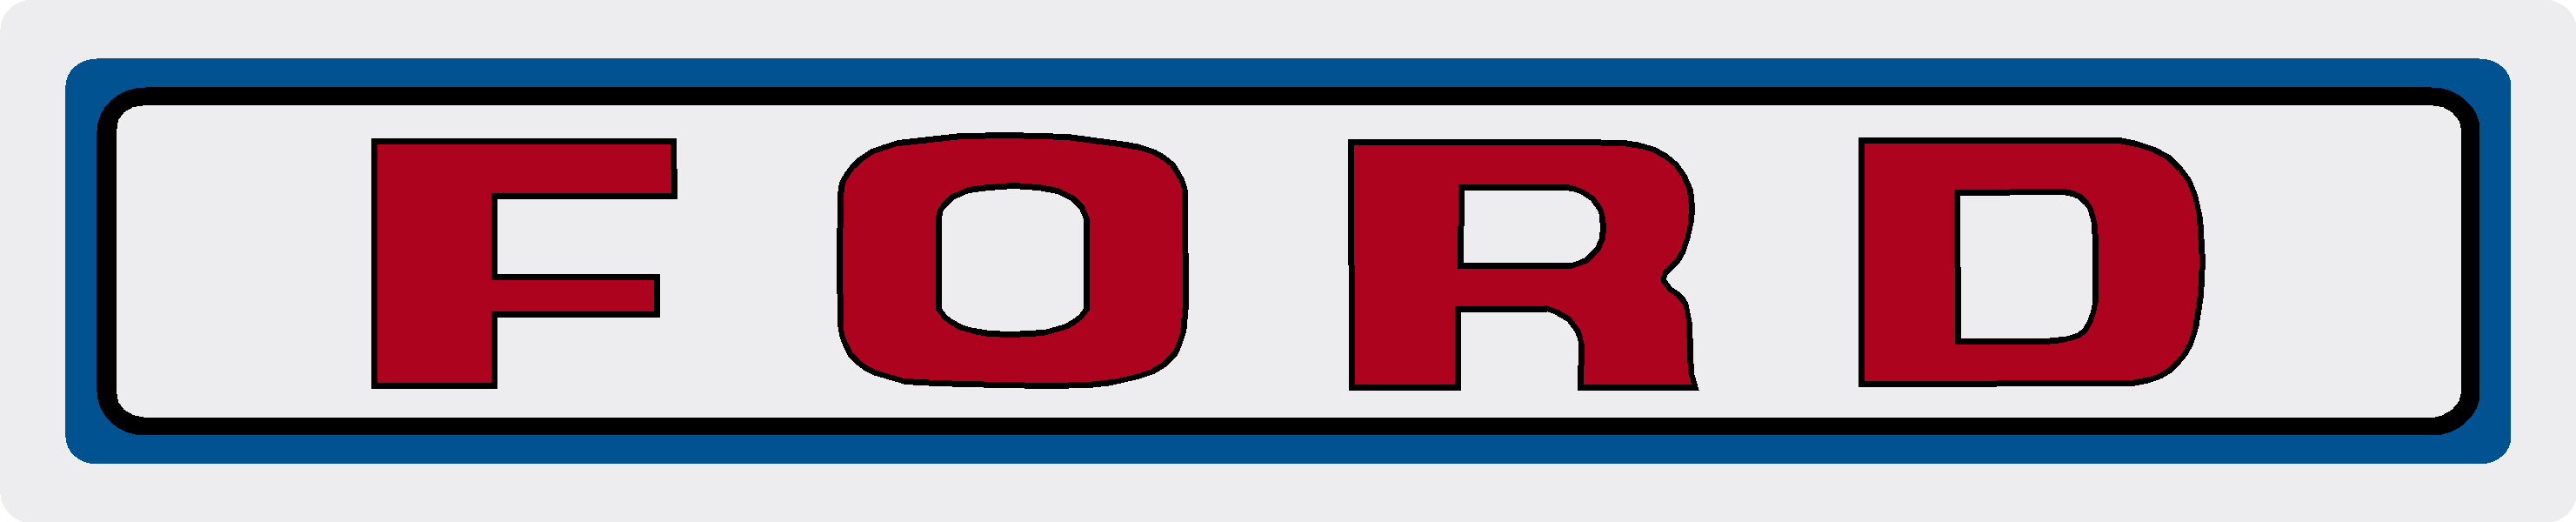 FORD 4000 TRACTOR DUAL POWER DASH DECAL